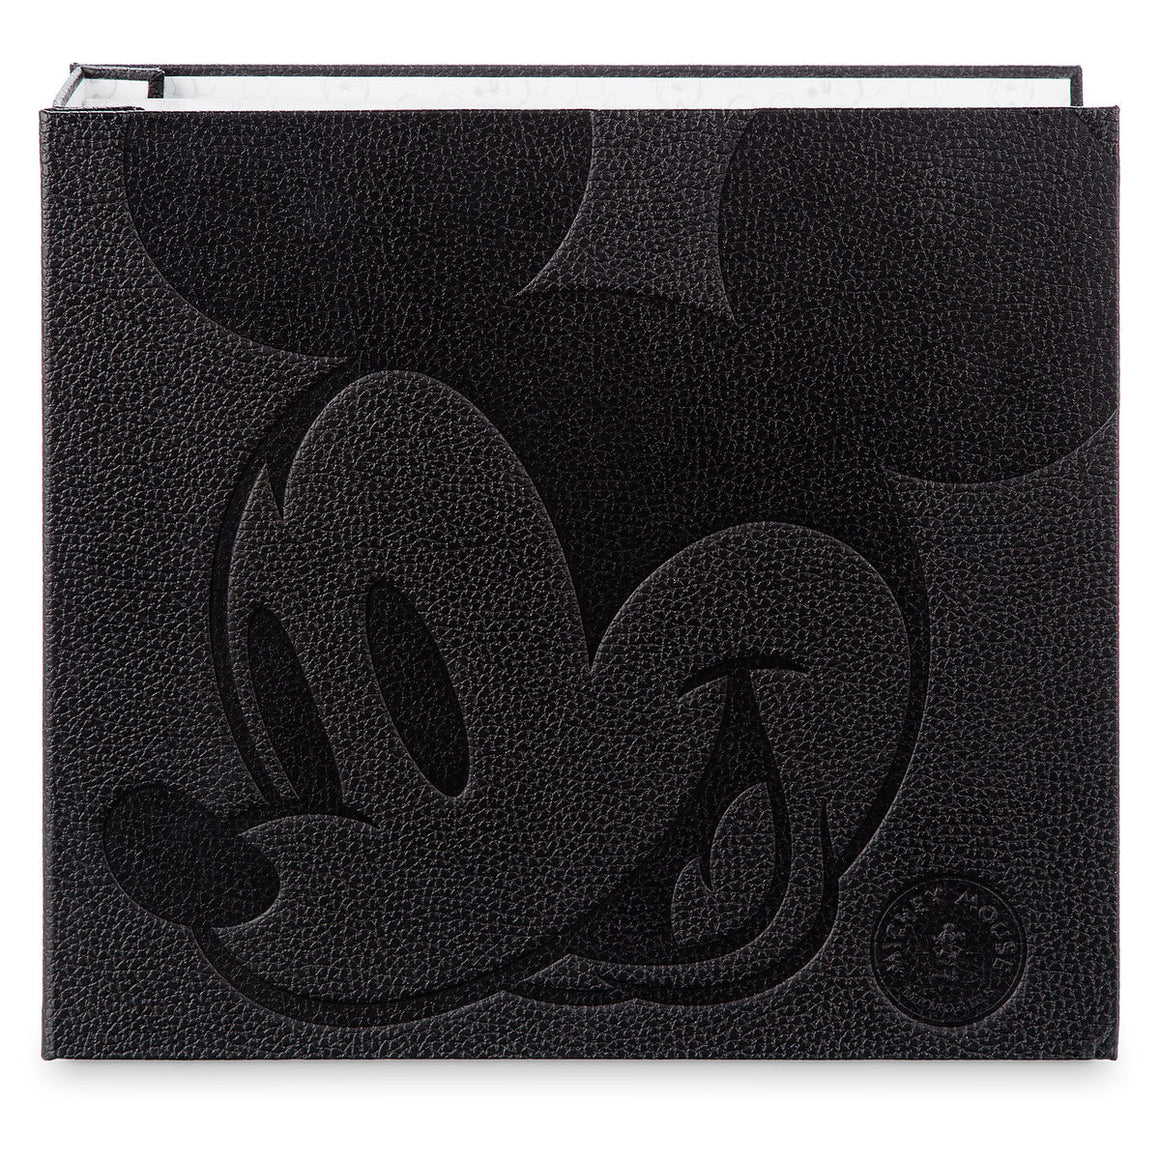 Mickey Mouse Memories Pin Collector's Album with Starter Mickey Memories Pin